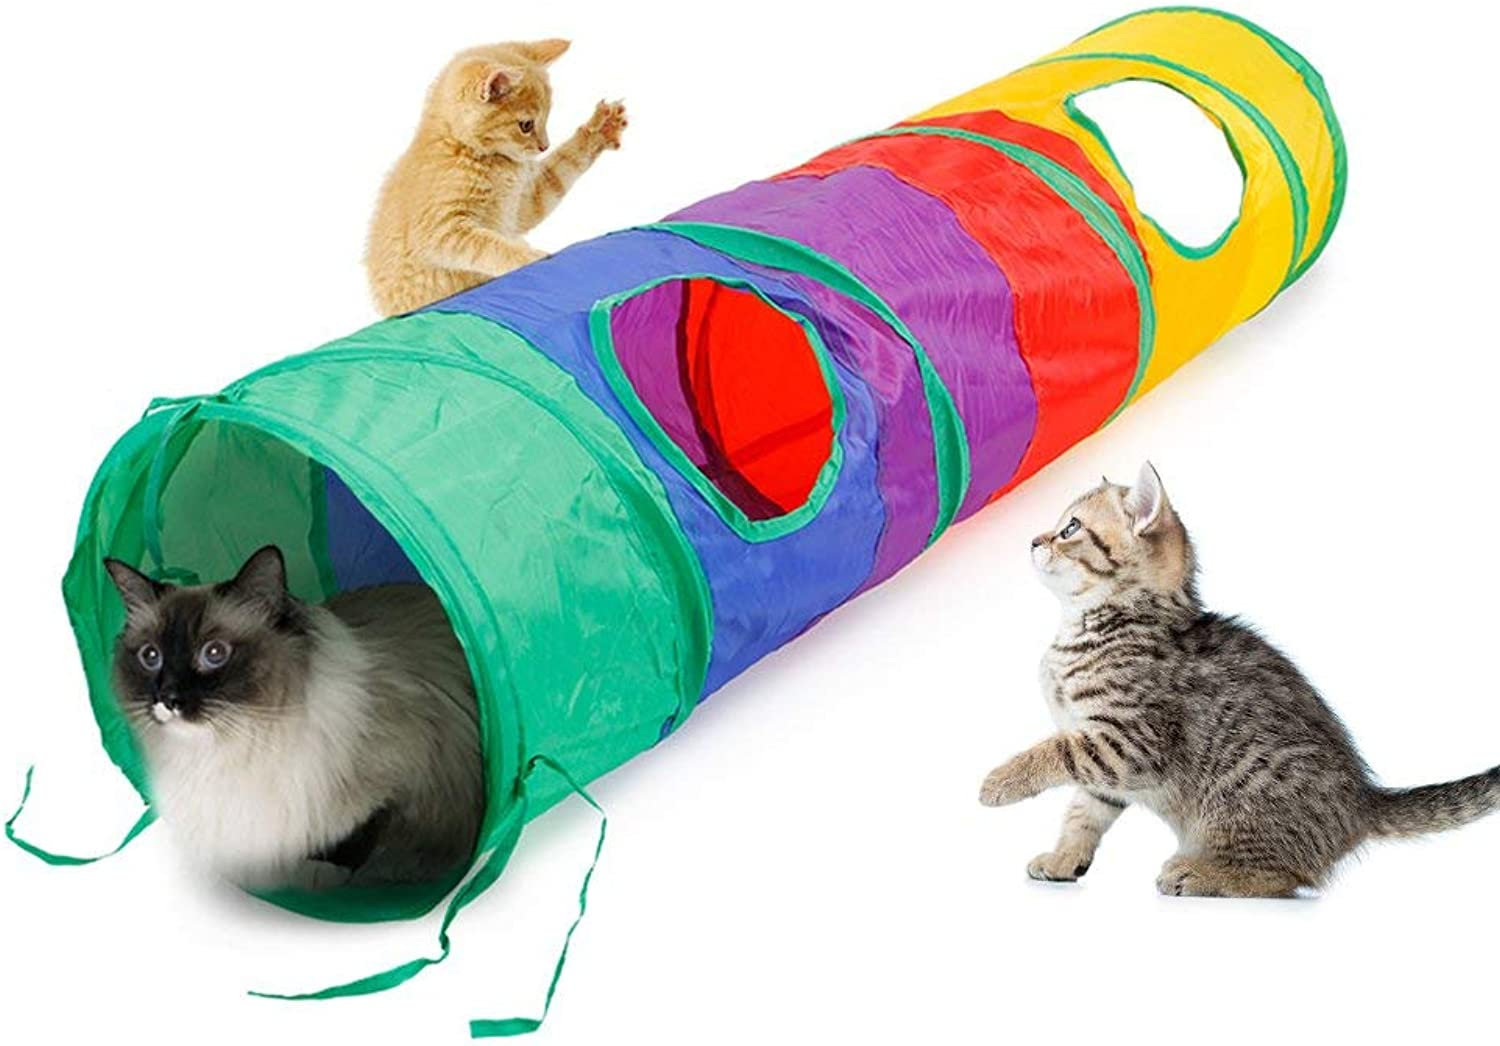 Cat Tunnel Pet Tube Collapsible Play Toy Indoor Outdoor Kitty Toys for Puzzle Exercising Hiding Training and Running with Fun Ball